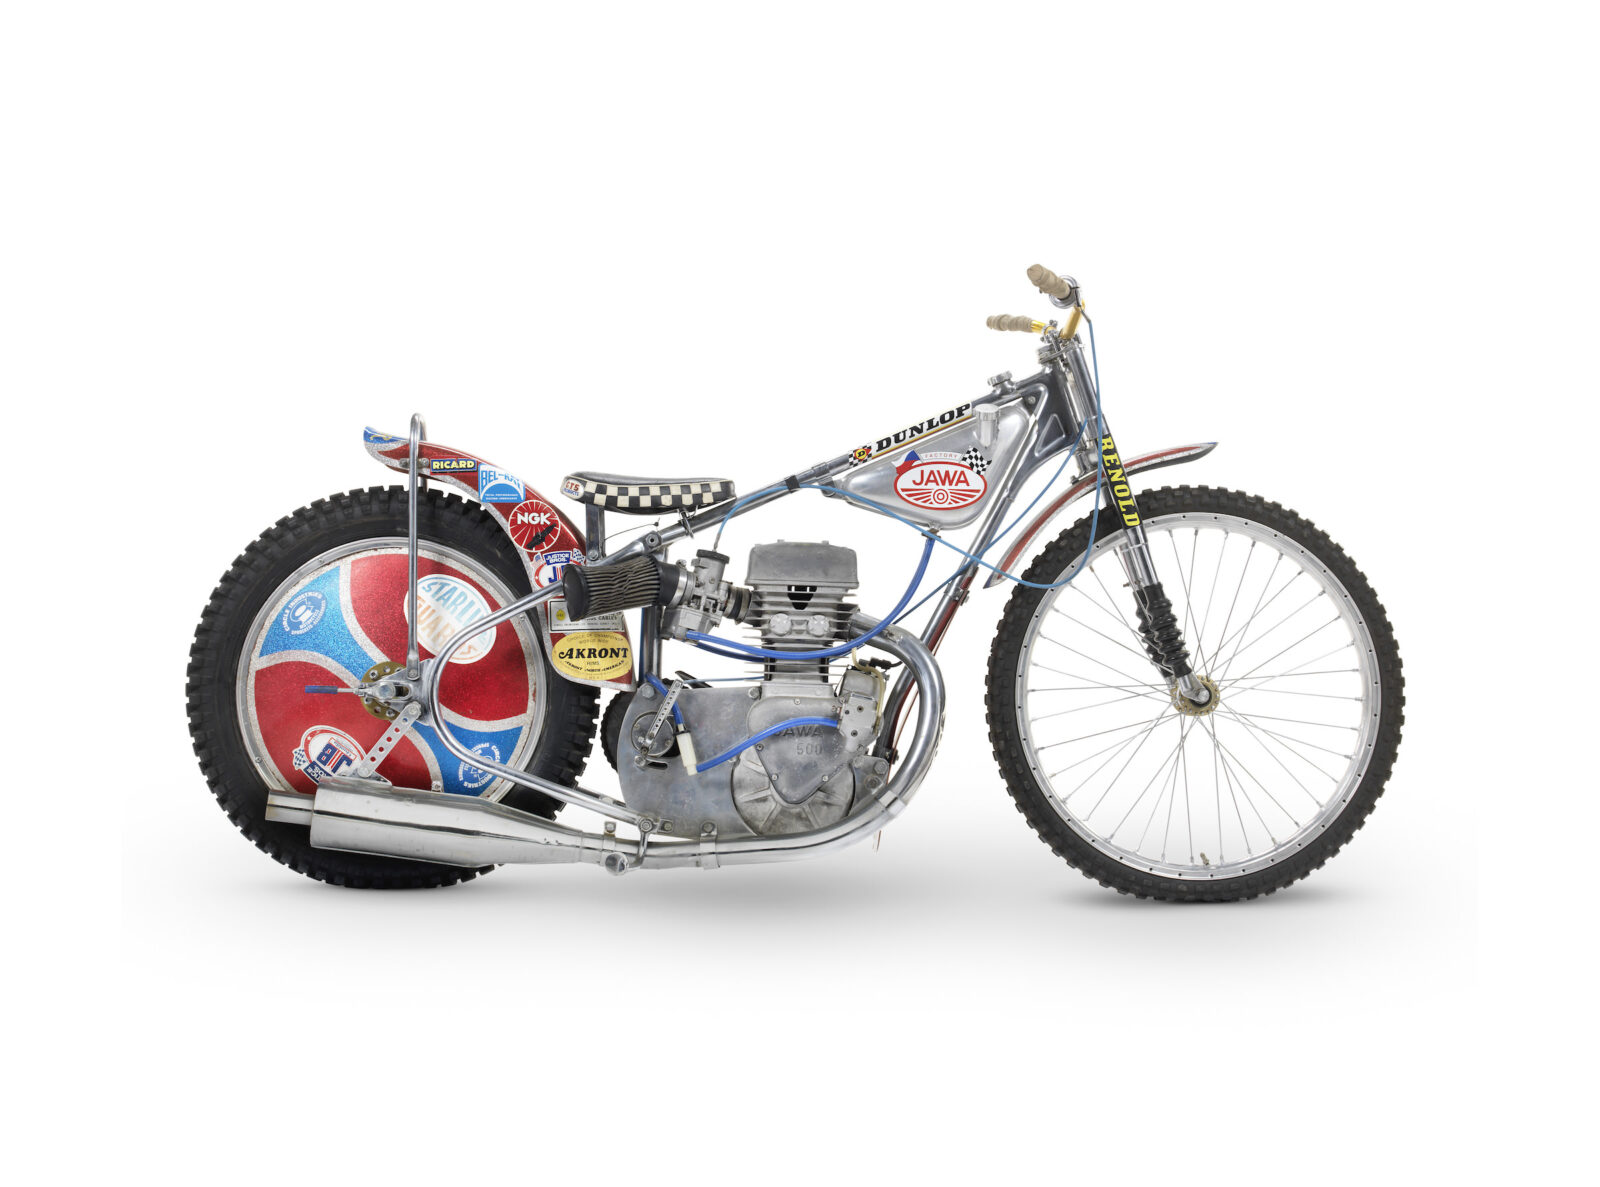 Jawa Speedway Racing Motorcycle 1600x1187 - 1977 Speedway World Championship Final Winning Jawa Racer